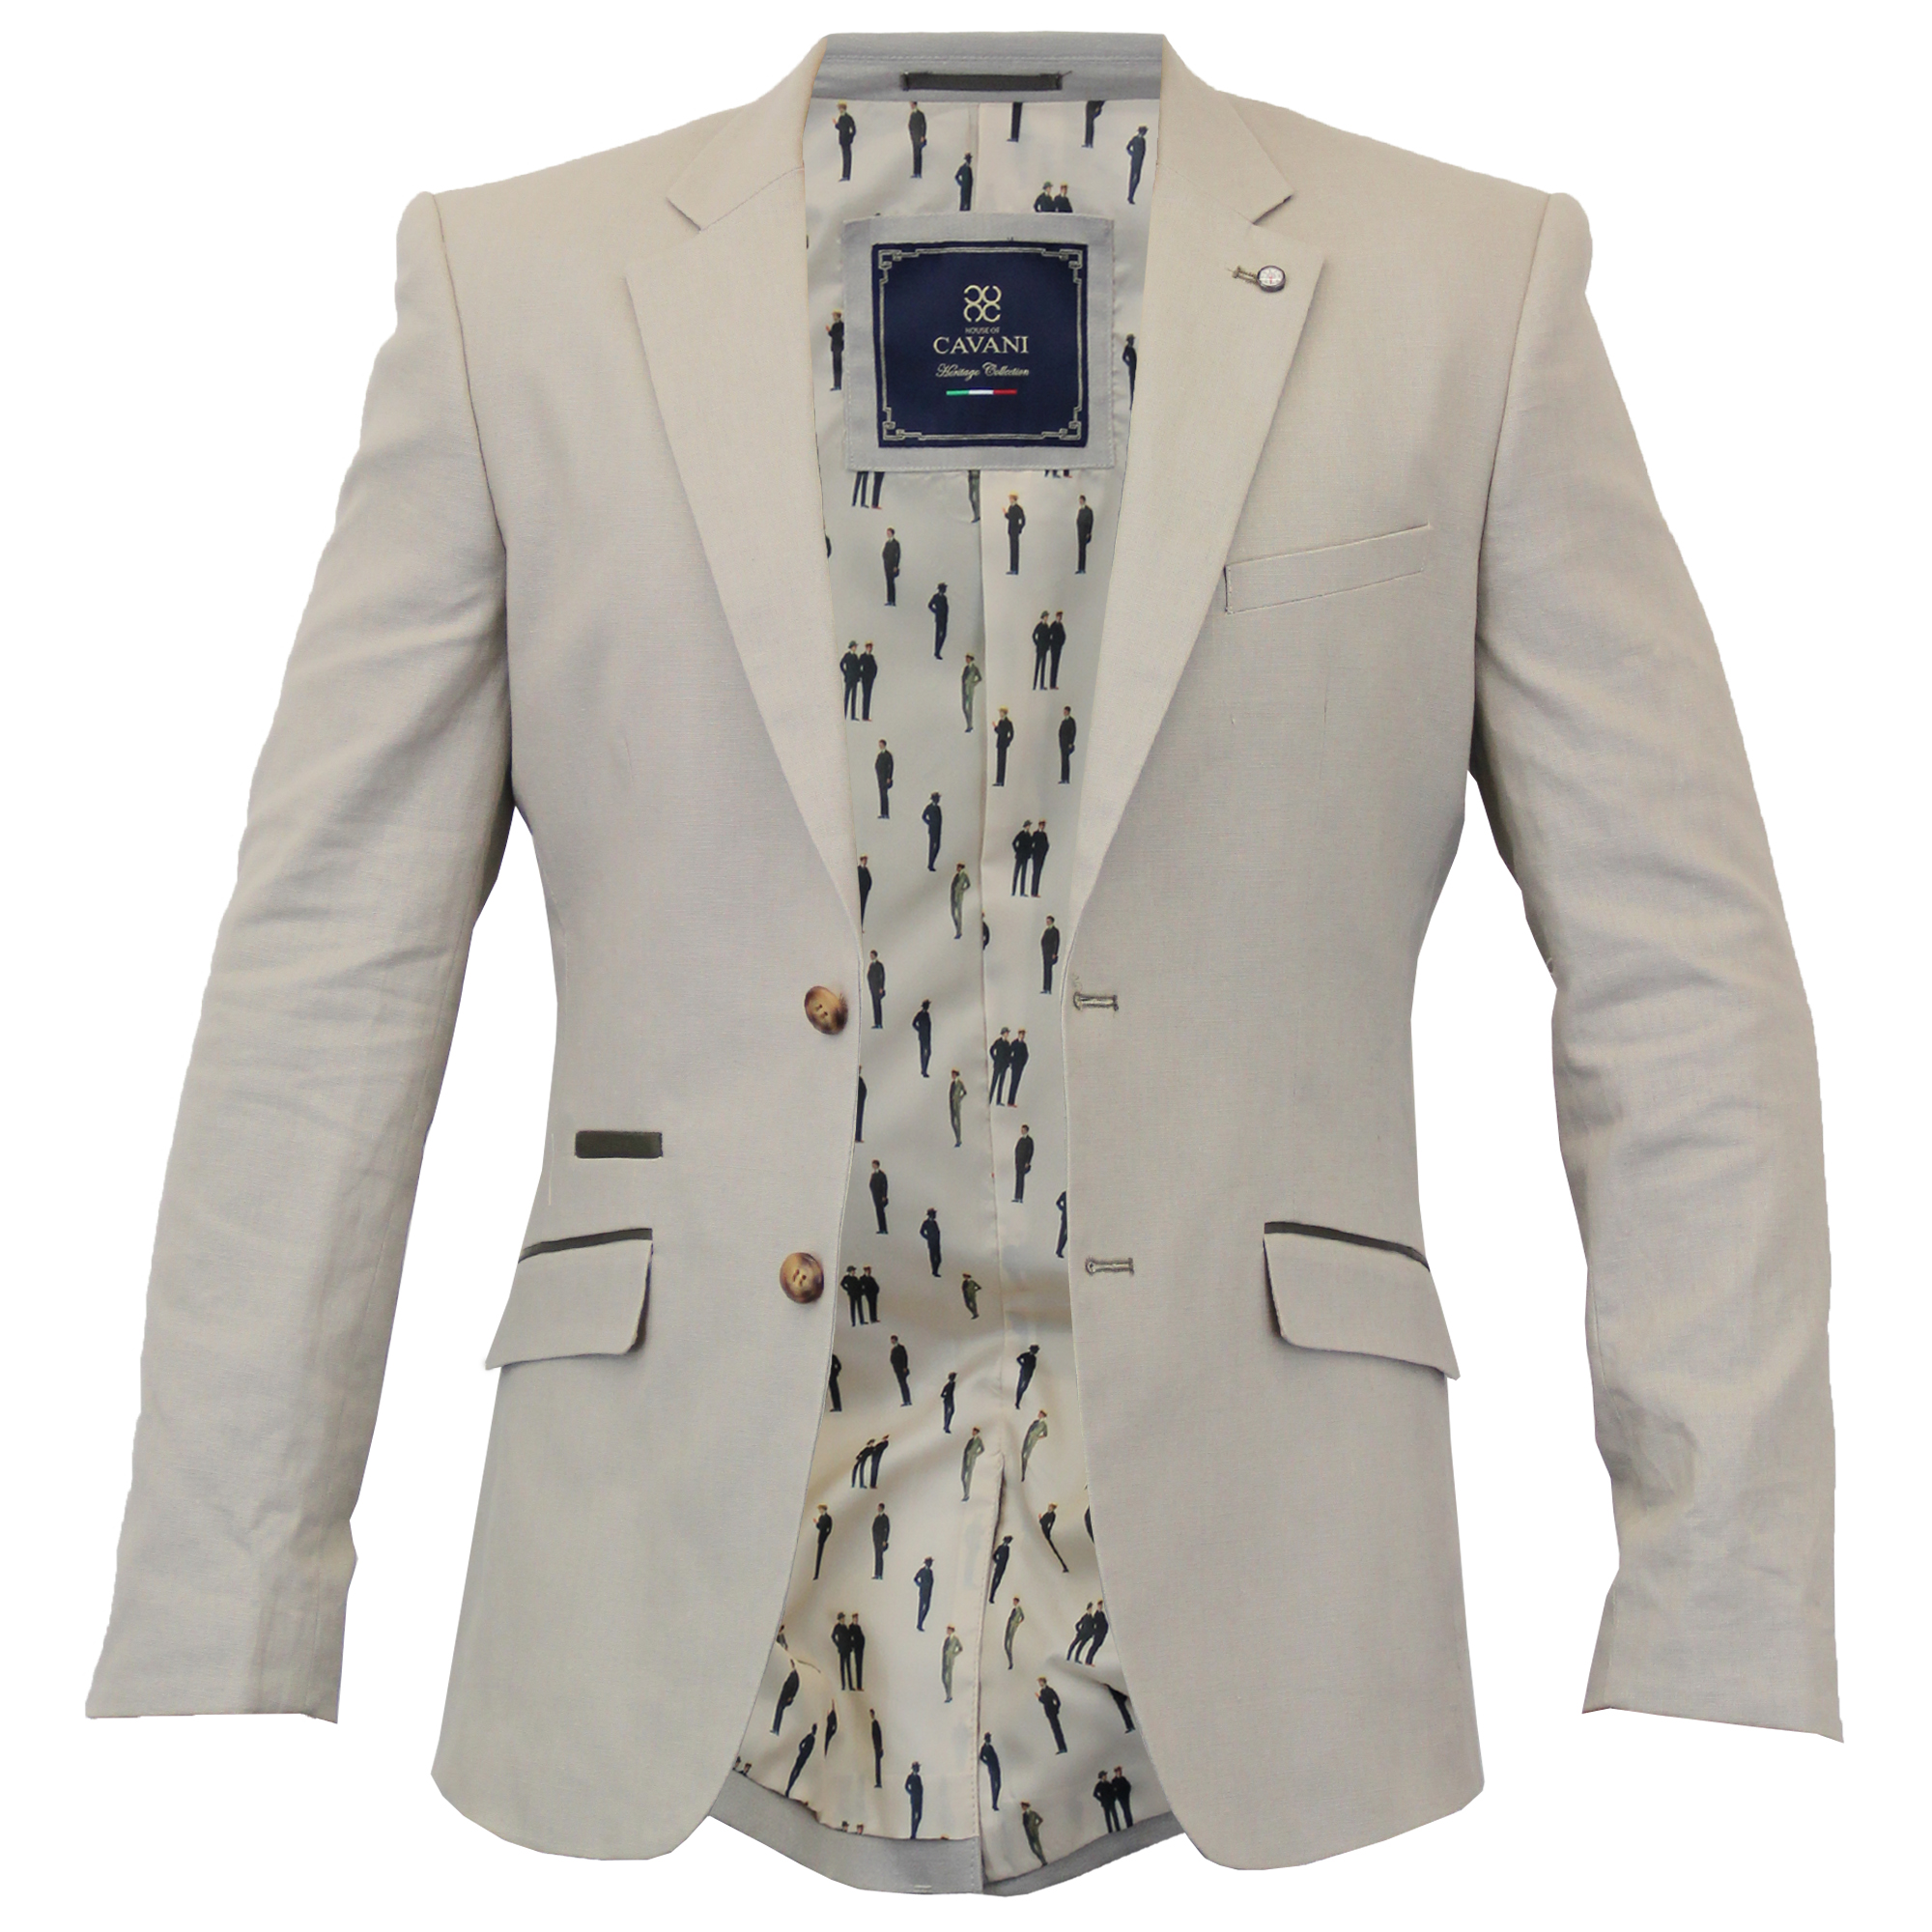 Find great deals on eBay for linen jacket men. Shop with confidence.